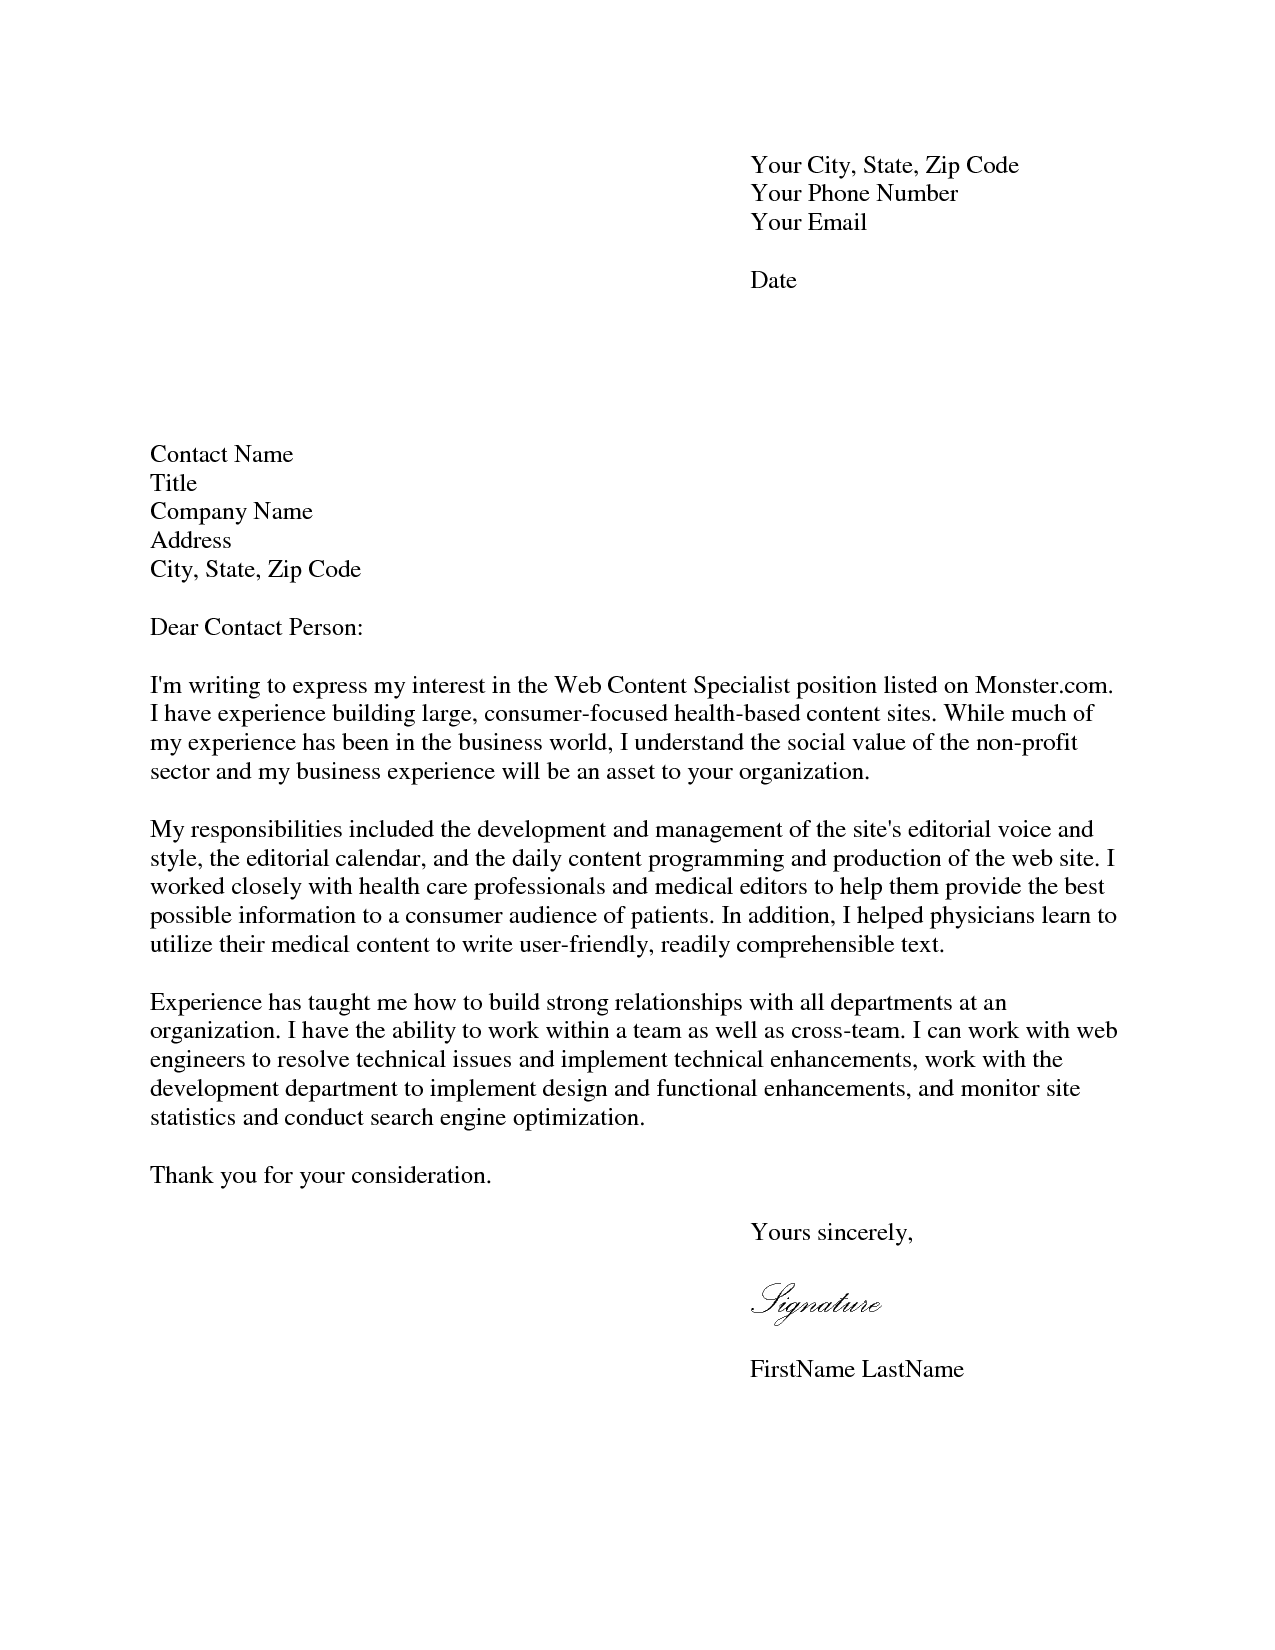 this cover letter makes an immediate impact on the reader by ...